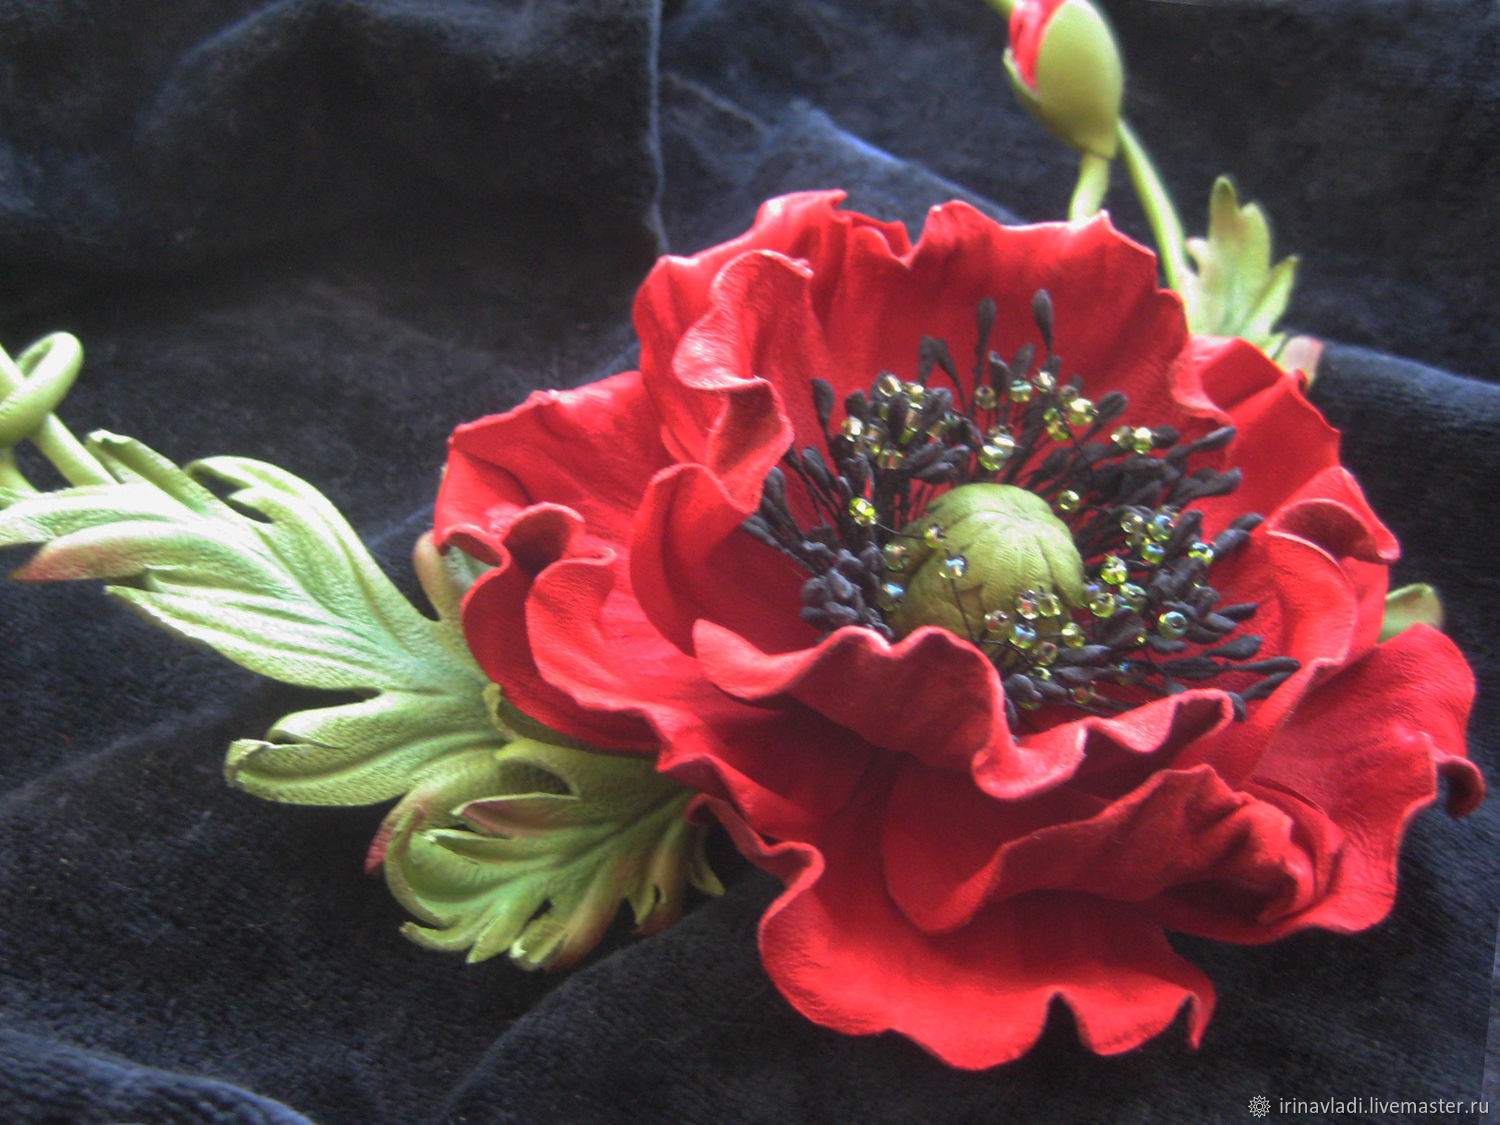 leather necklace, floral necklace, flowers necklace, red necklace,green necklace, necklace made of leather with flowers, poppy, necklace, necklace leather, leather flowers necklace